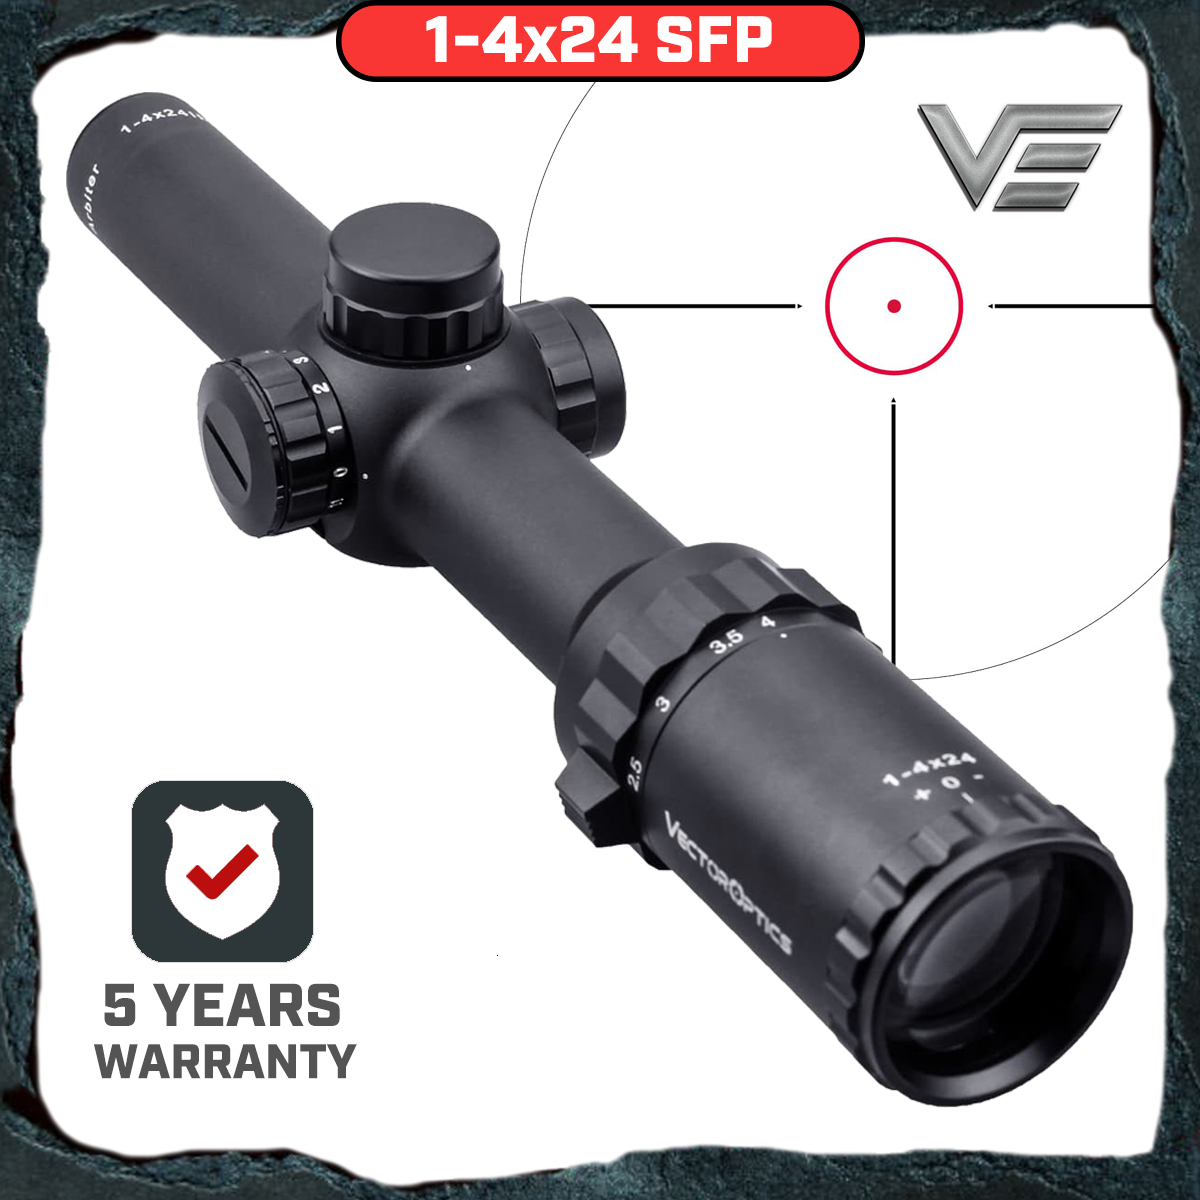 Vector Optics Arbiter 1-4x24 Hunting Riflescope Long Eye Relief Illuminated Red Telescopic Sight Scope Fit 30-06 308 AR15 M4